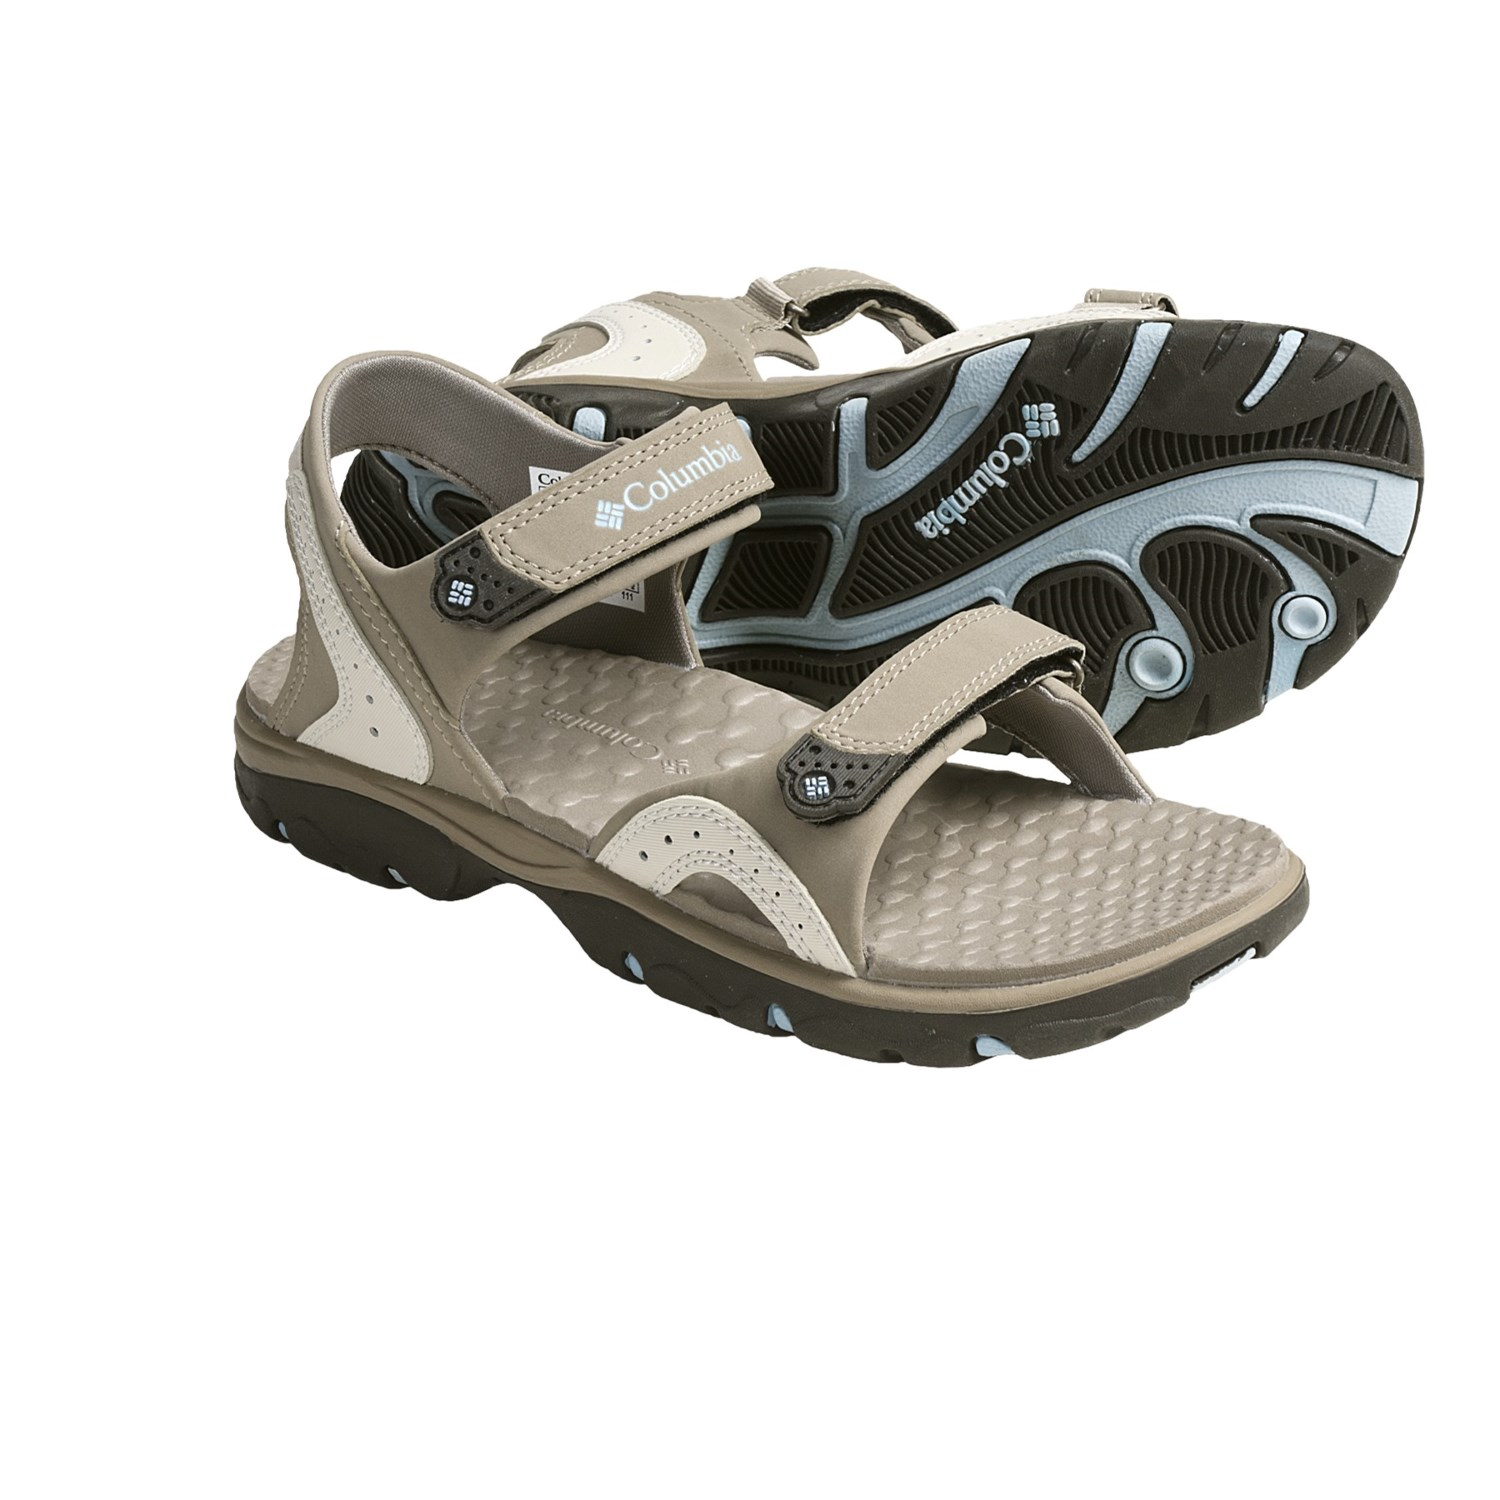 Cool Sandals The Columbia Kambi Sandals Are Made From Quality Materials